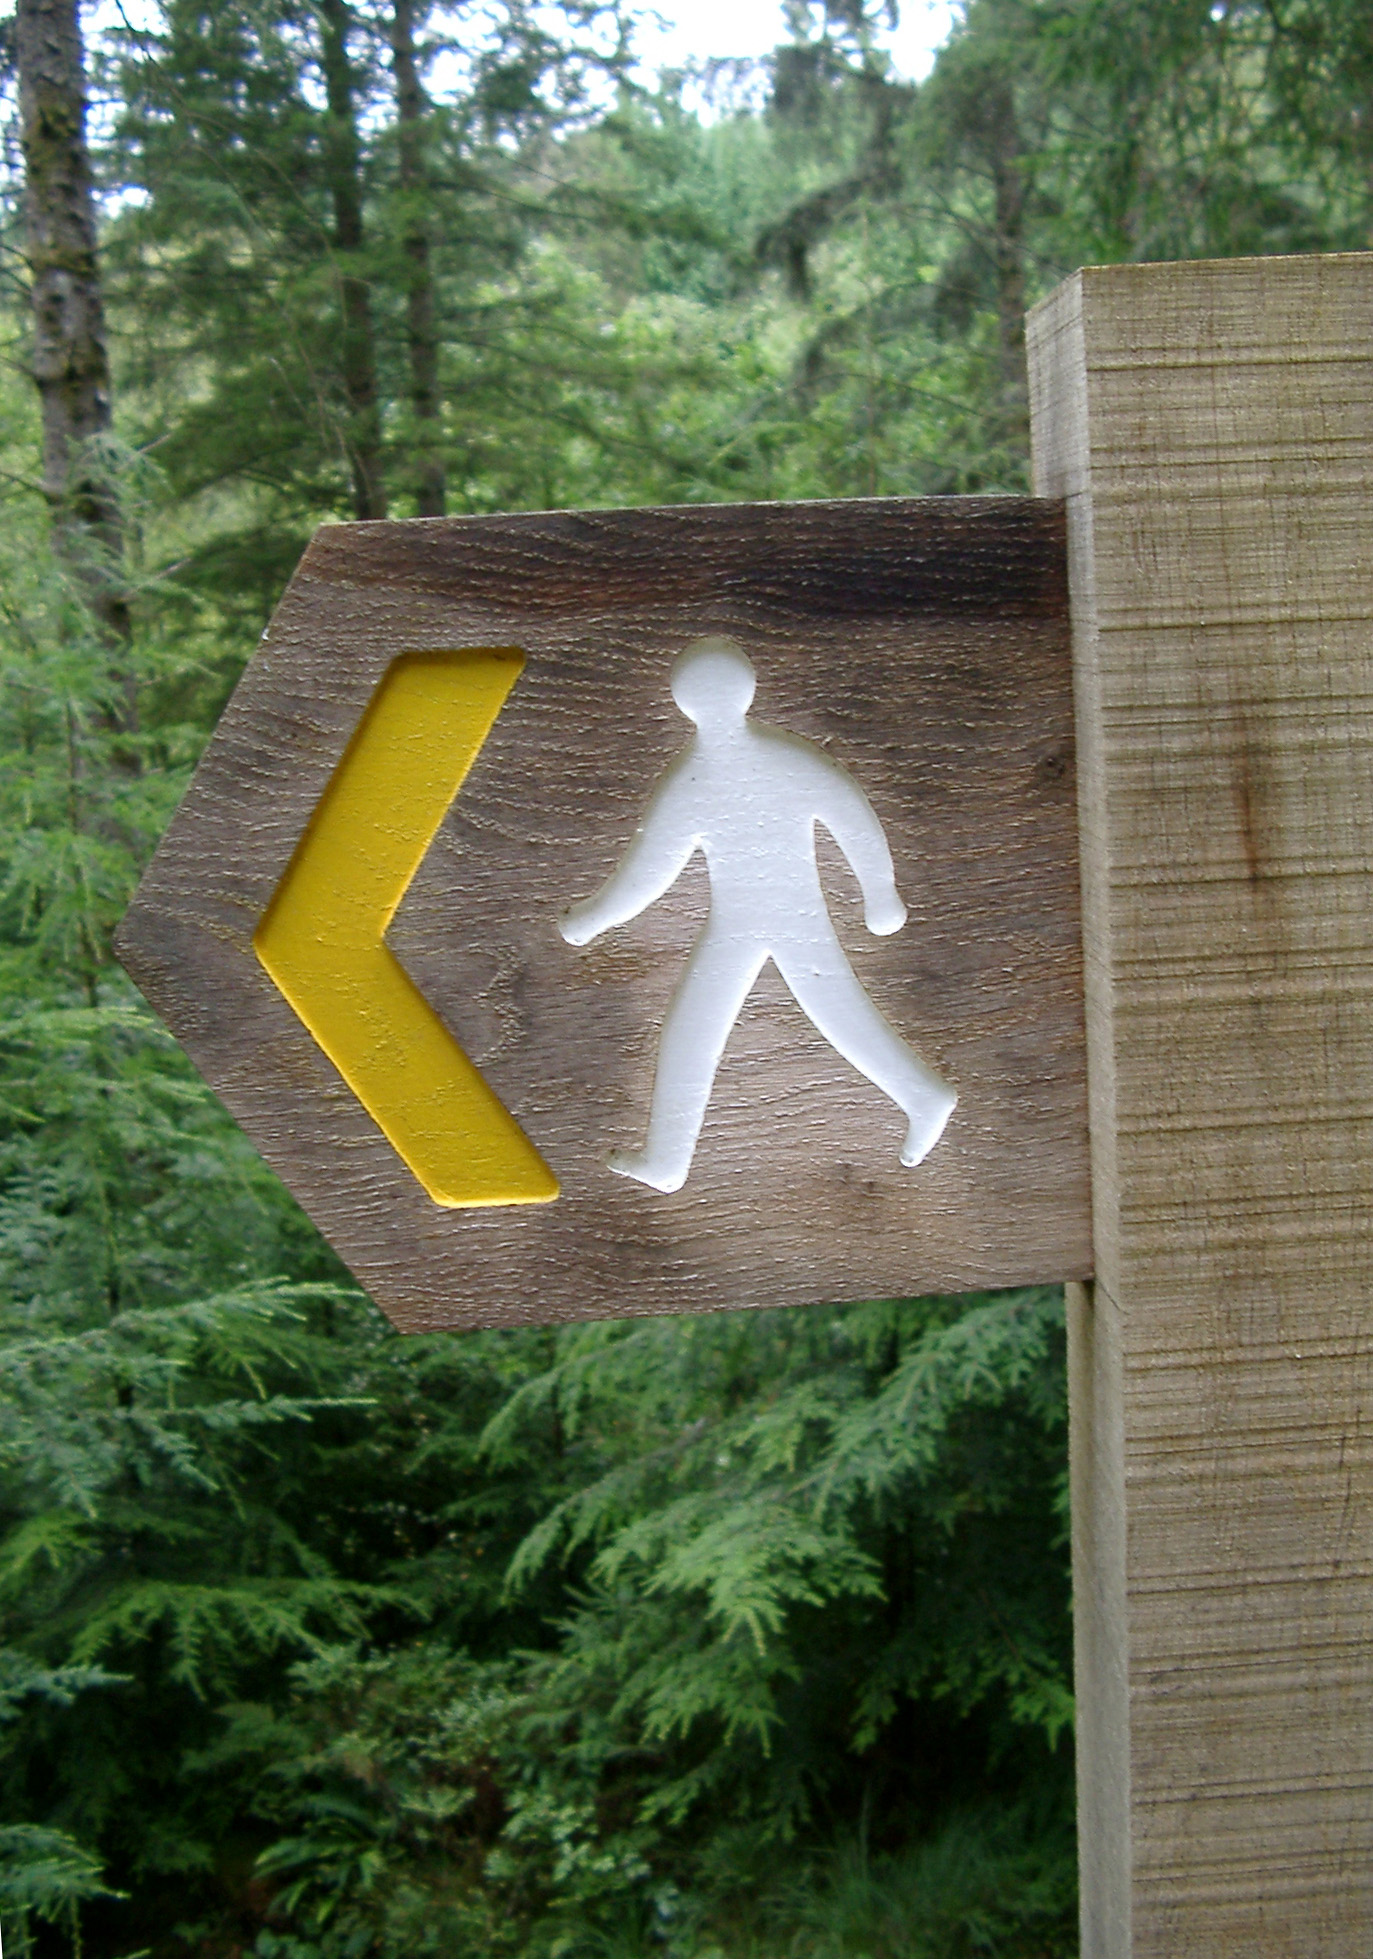 Rustic wooden footpath sign with a silhouette of a walking man and left pointing yellow arrow showing the direction of the trail, outdoors in woodland